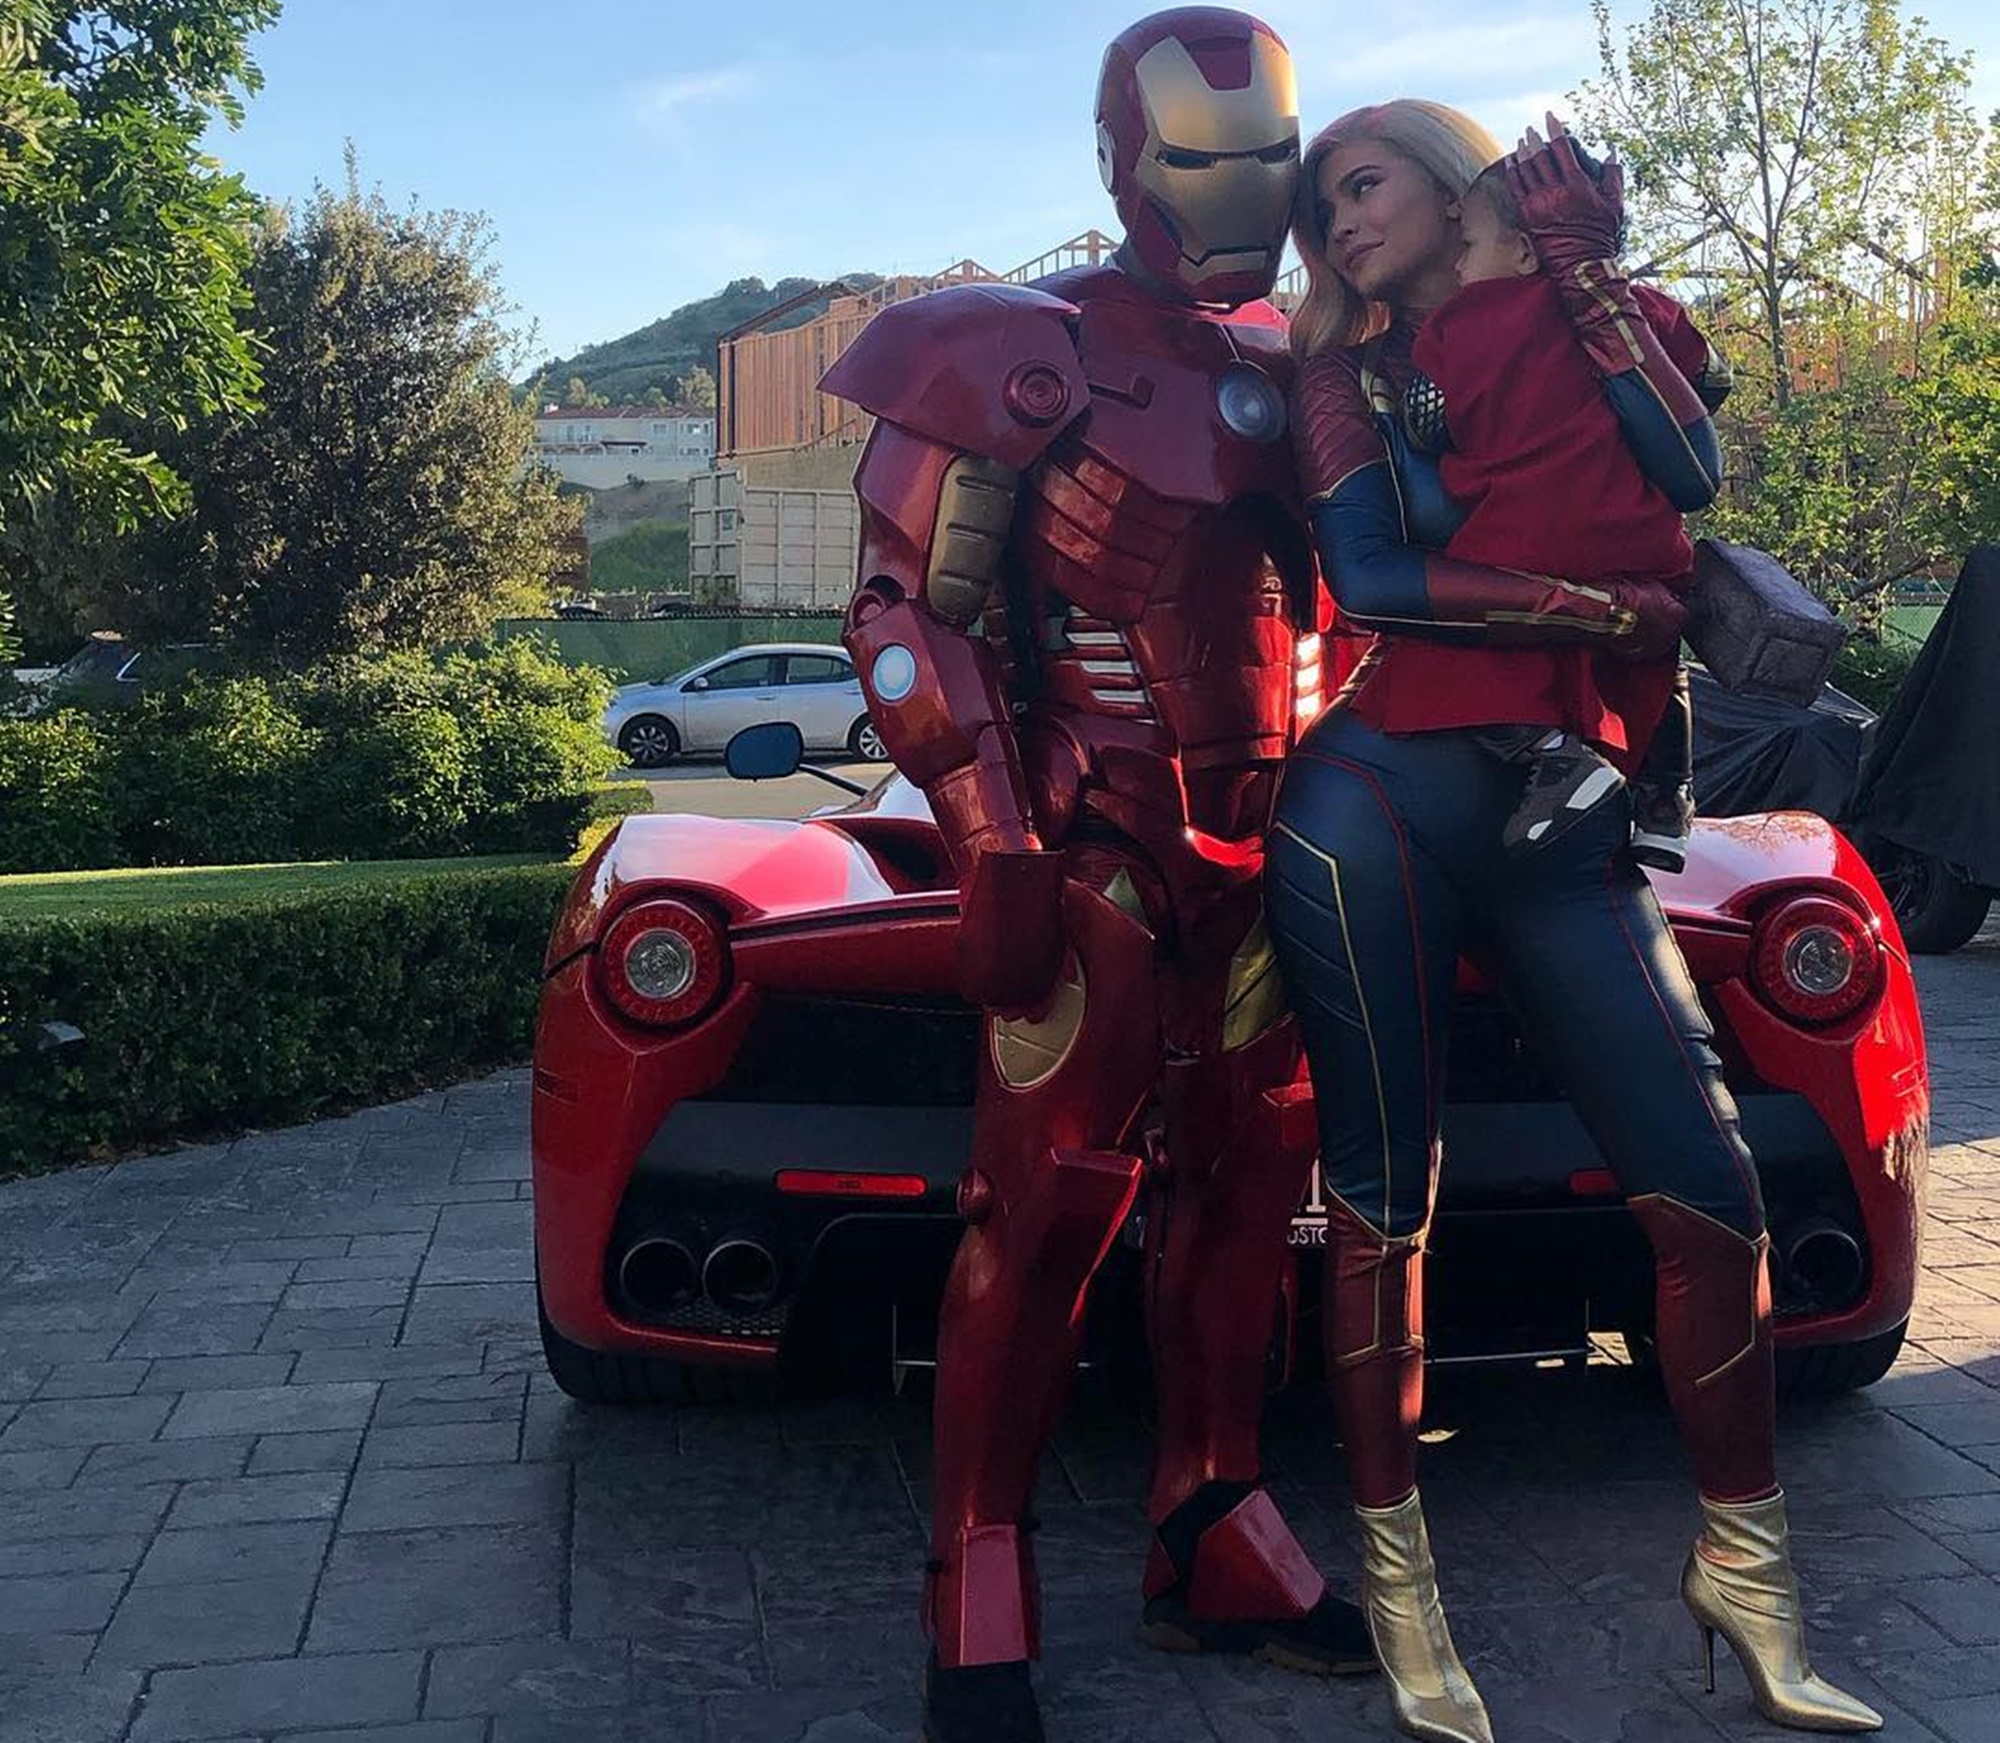 Travis Scott + Kylie Jenner Celebrate AVENGERS: ENDGAME By Dressing Up As Marvel Superheroes